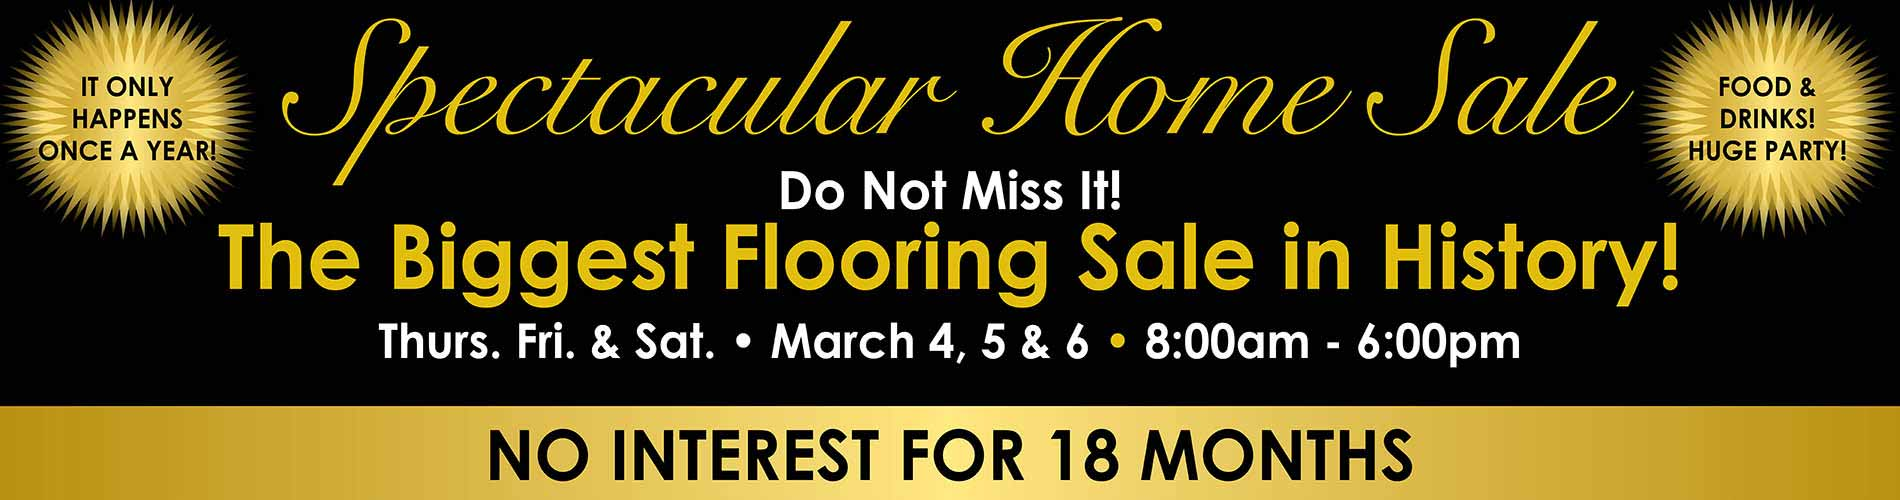 Save on Flooring during our Spectacular Home Sale at Ted's Abbey Carpet in Anniston